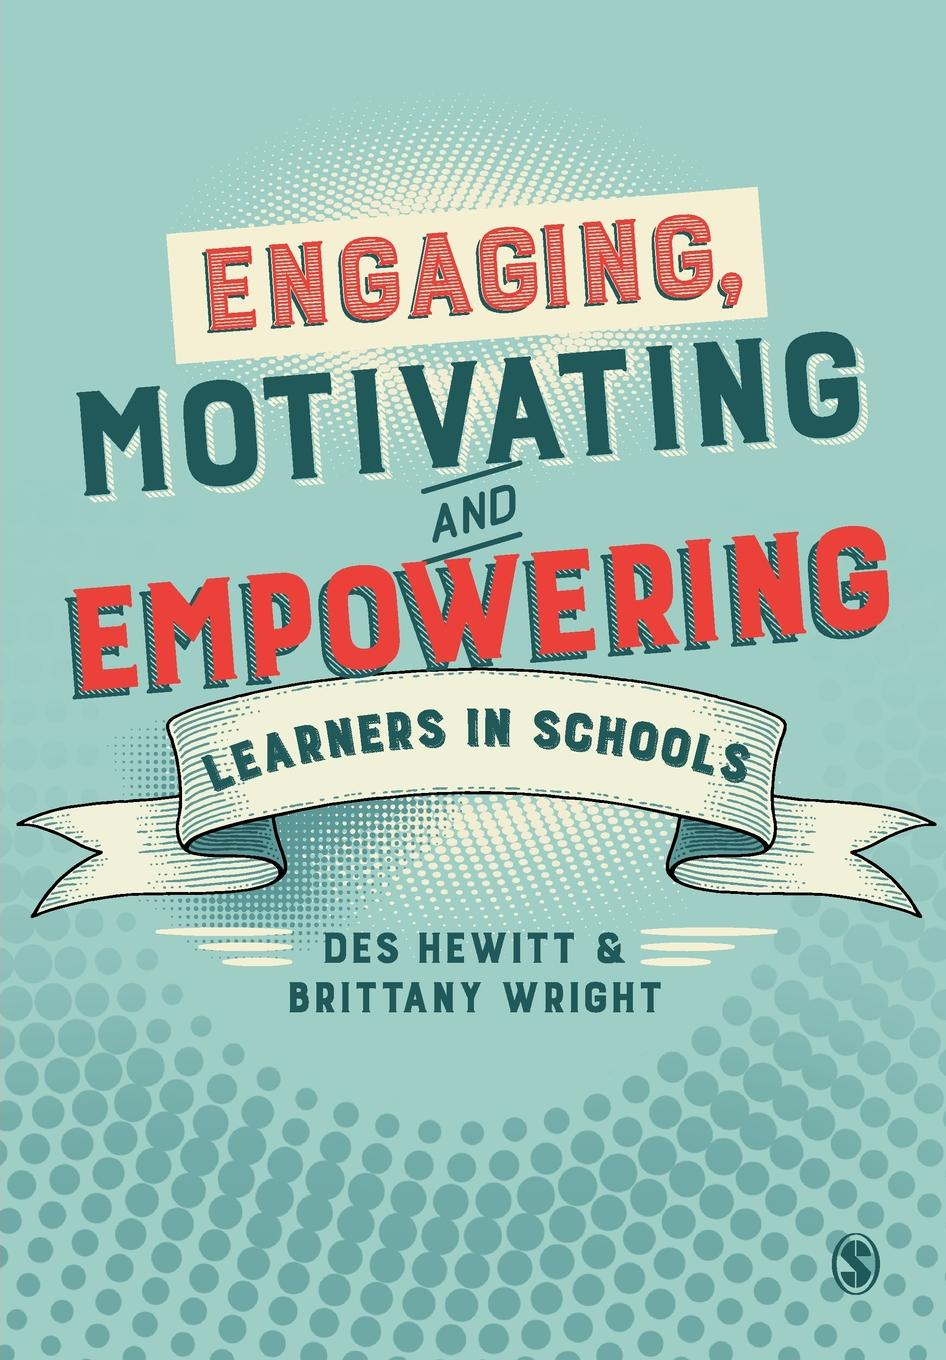 Des Hewitt Engaging, Motivating and Empowering Learners in Schools